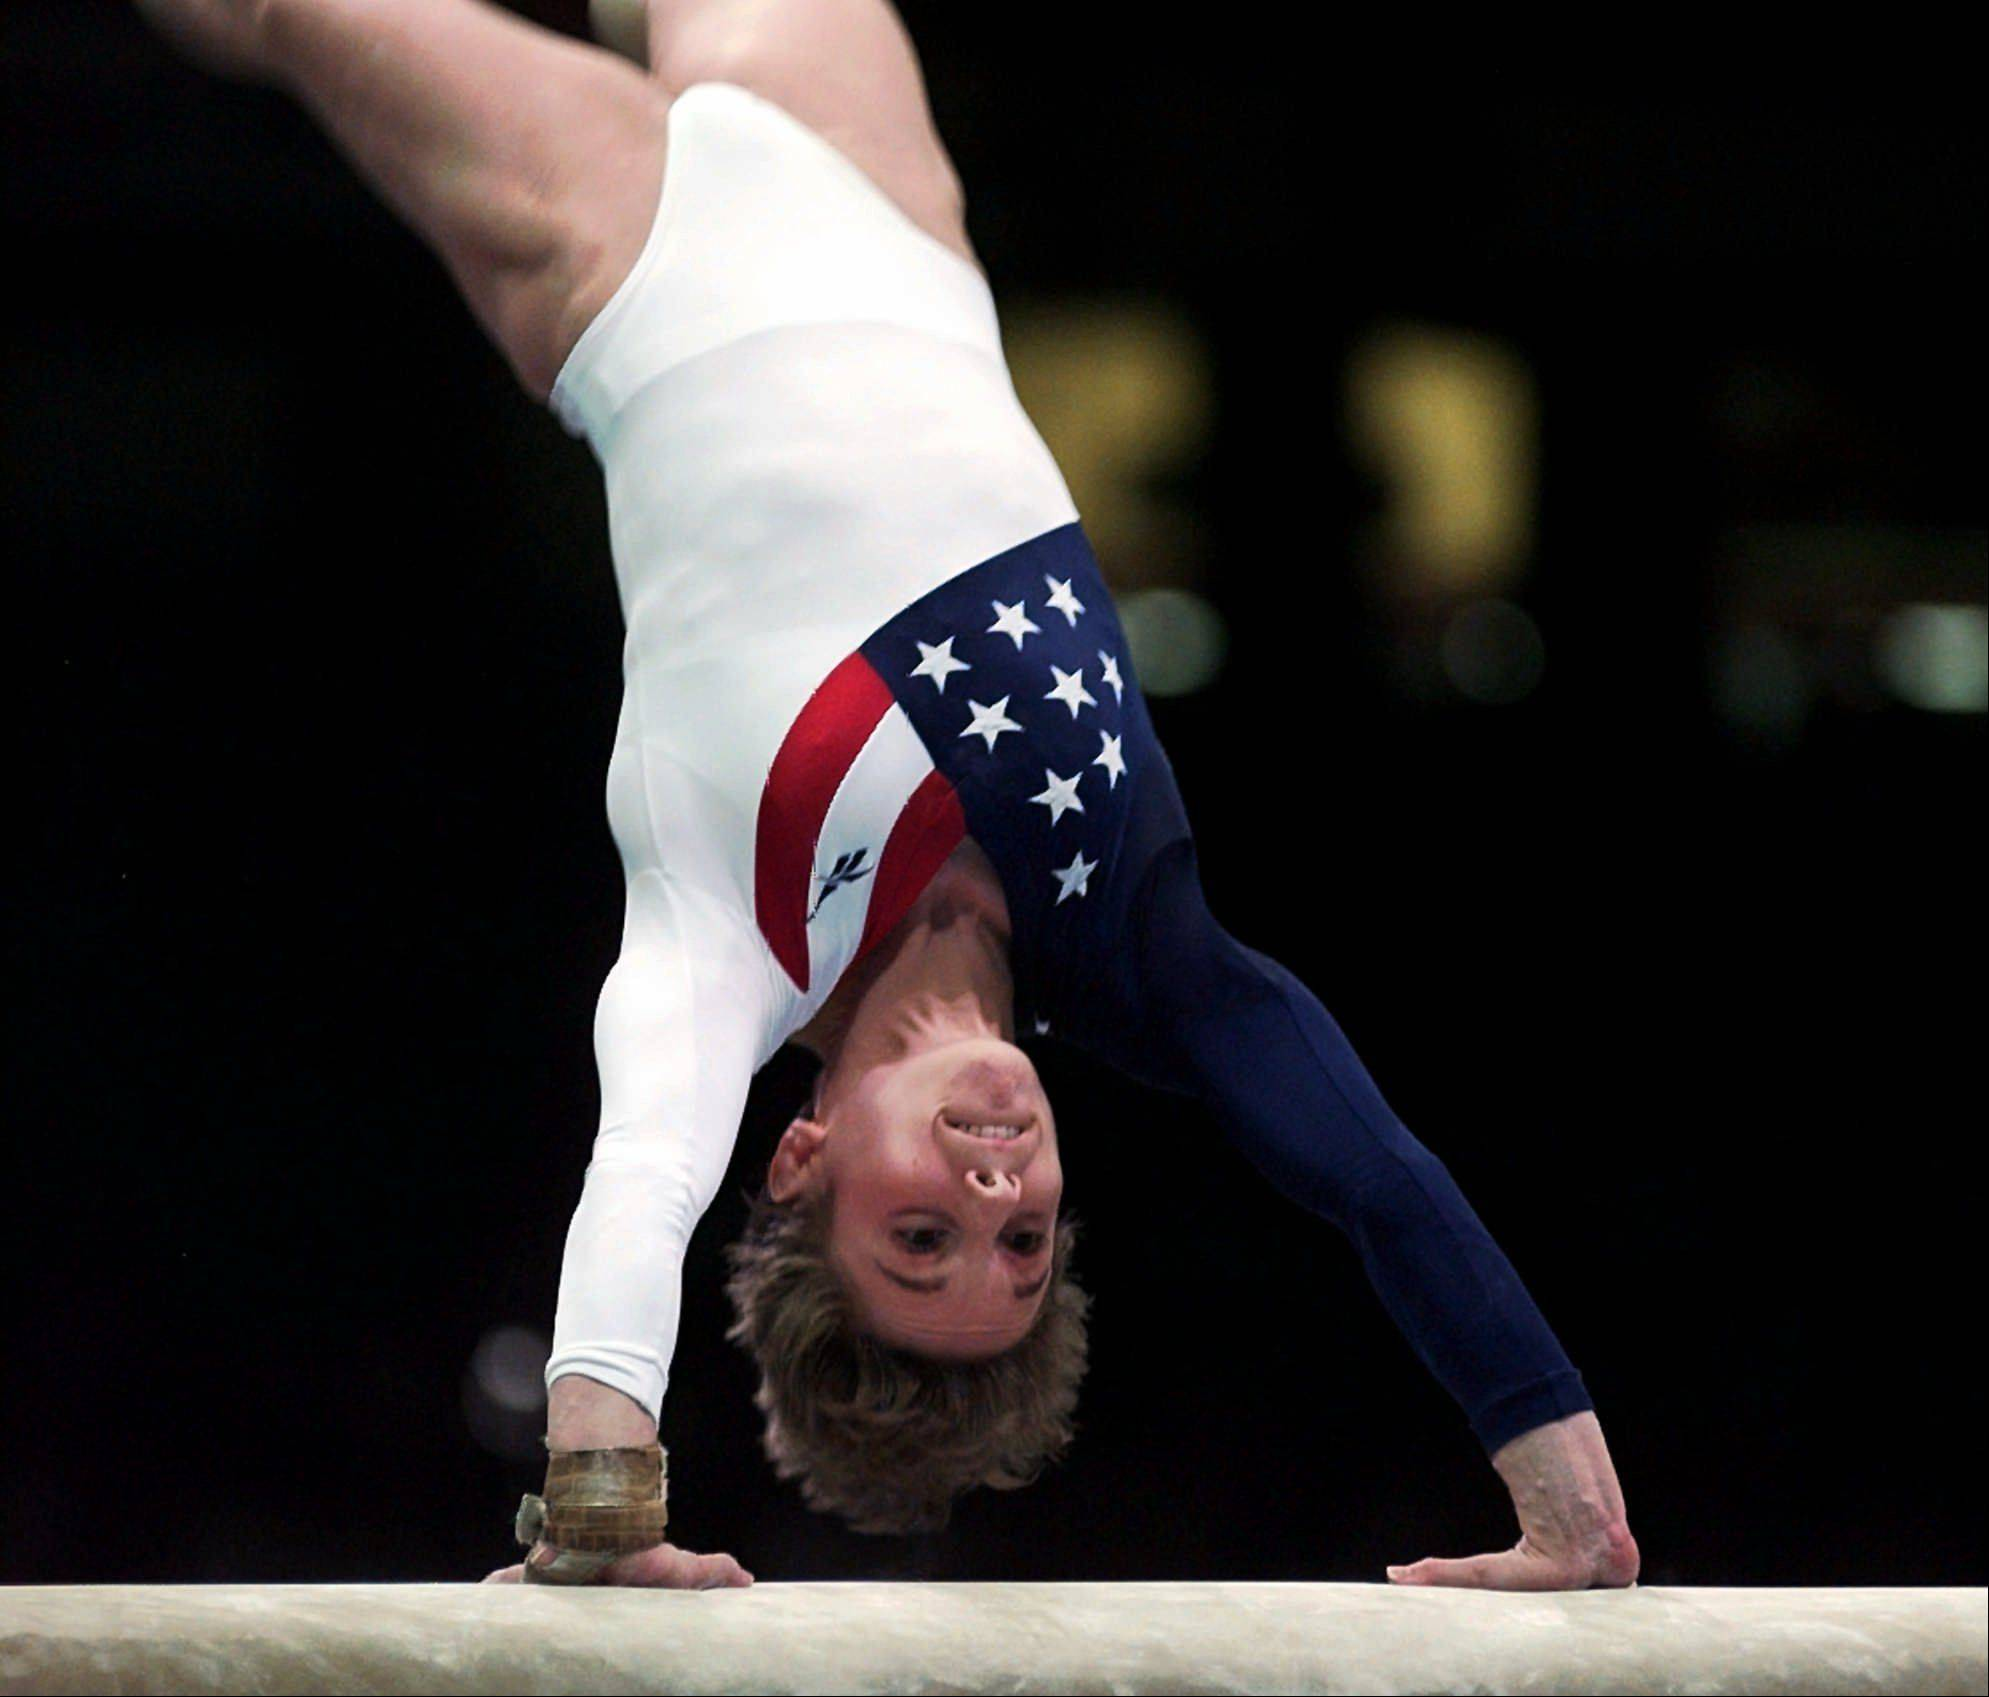 Kerri Strug, of Houston, Texas performs her routine on the vault during the women's team gymnastics competition at the Centennial Summer Olympic Games in Atlanta on Tuesday, July 23, 1996. Strug injured her left leg following this routine.